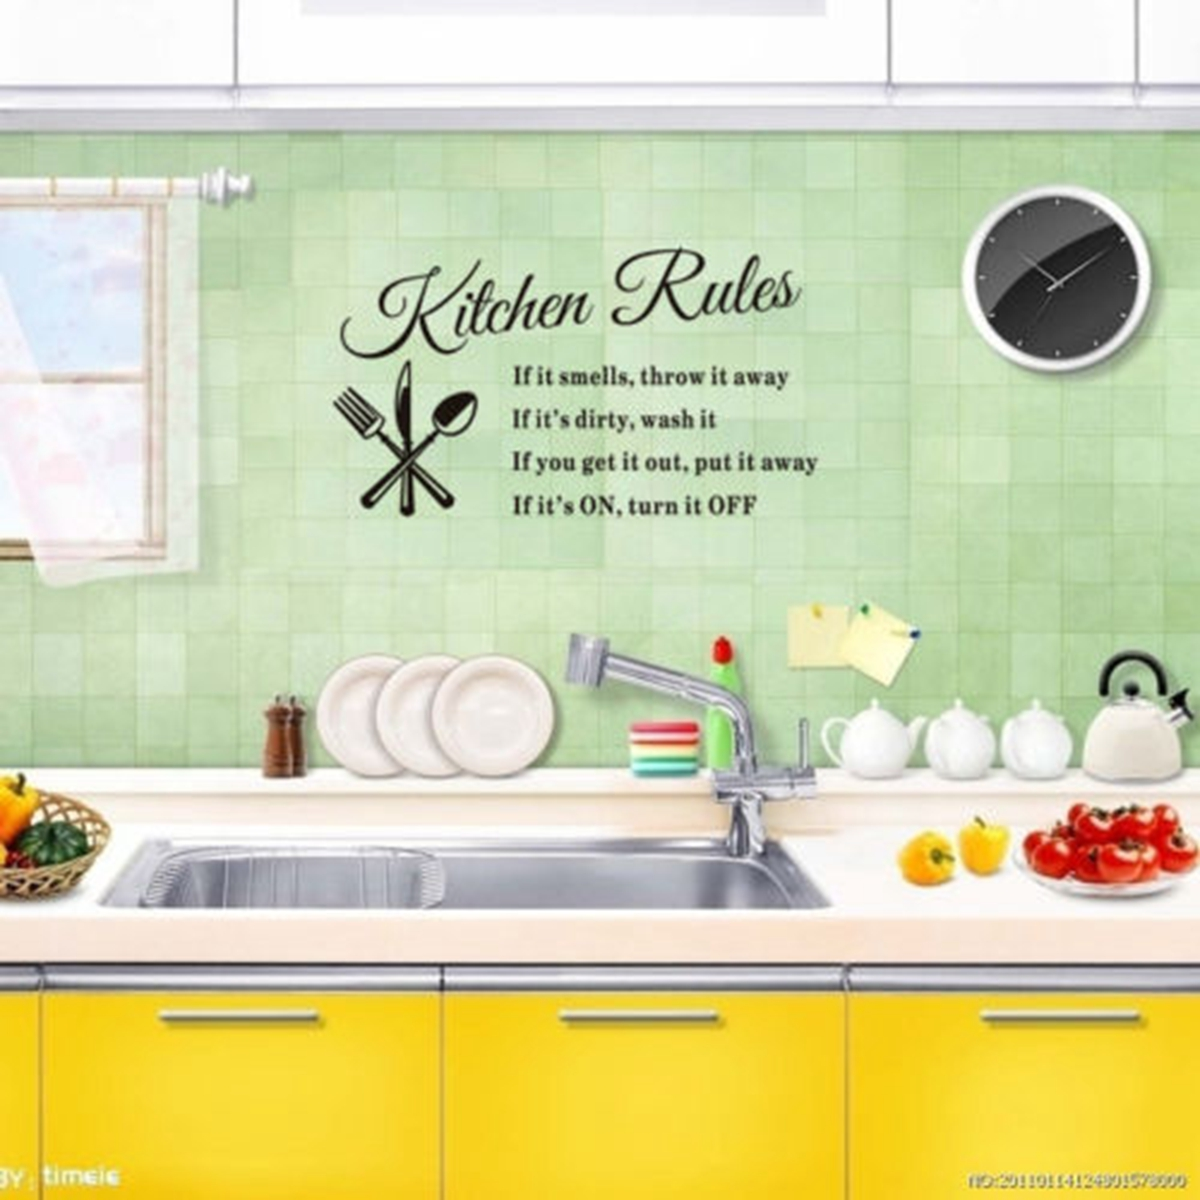 "1Pcs Removable Kitchen Rules Words Wall Stickers Decal Home Decor,23.62""x 12.99"""